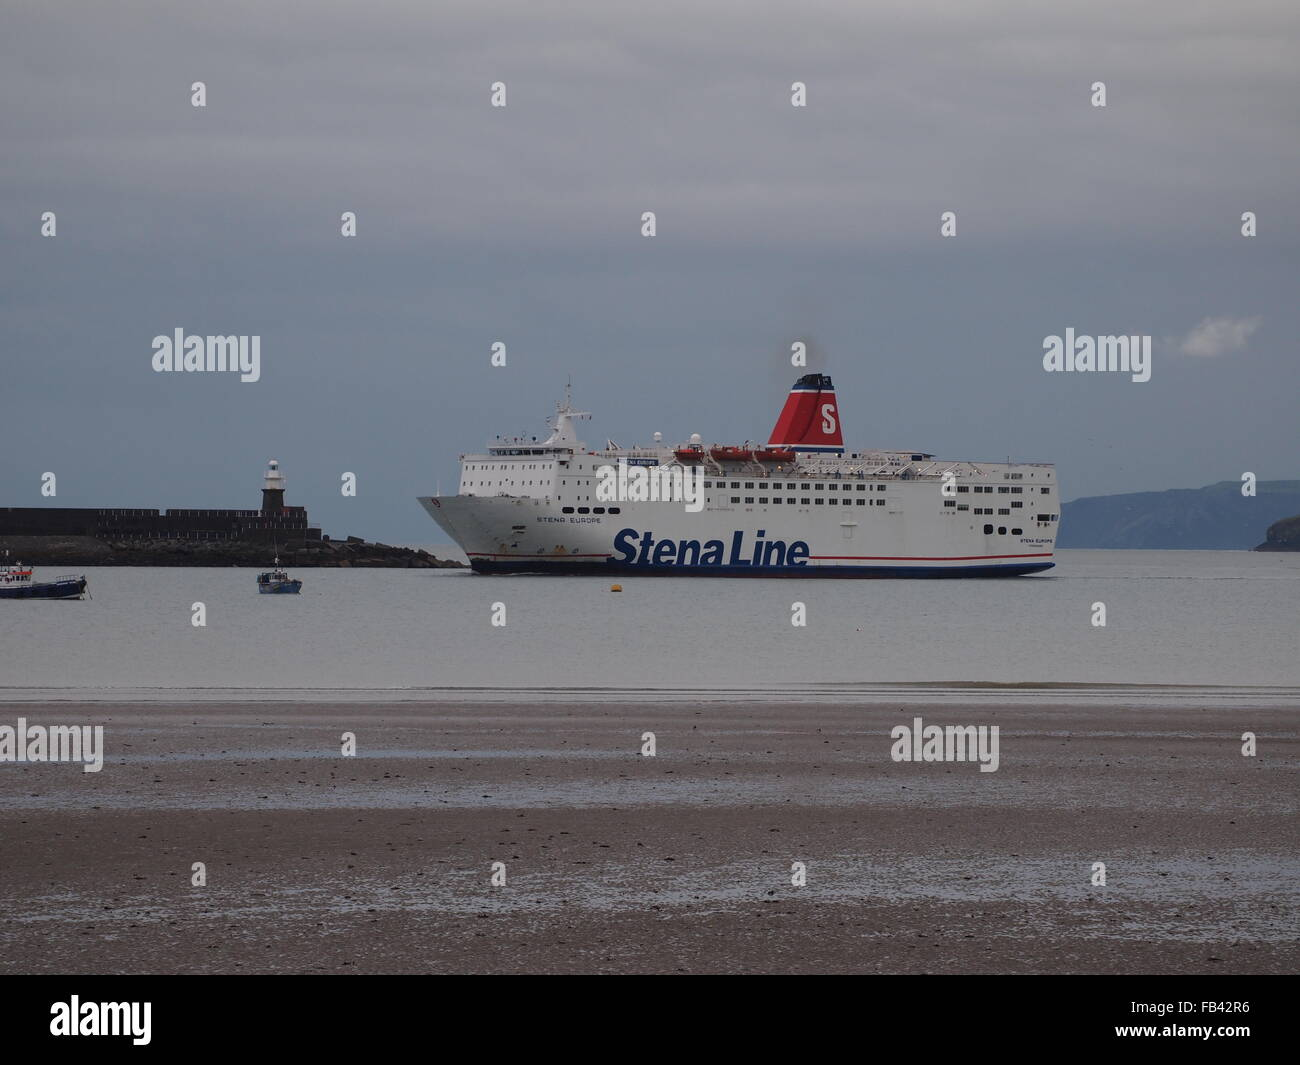 Stena Line ferry entering Fishguard harbour in Wales - Stock Image